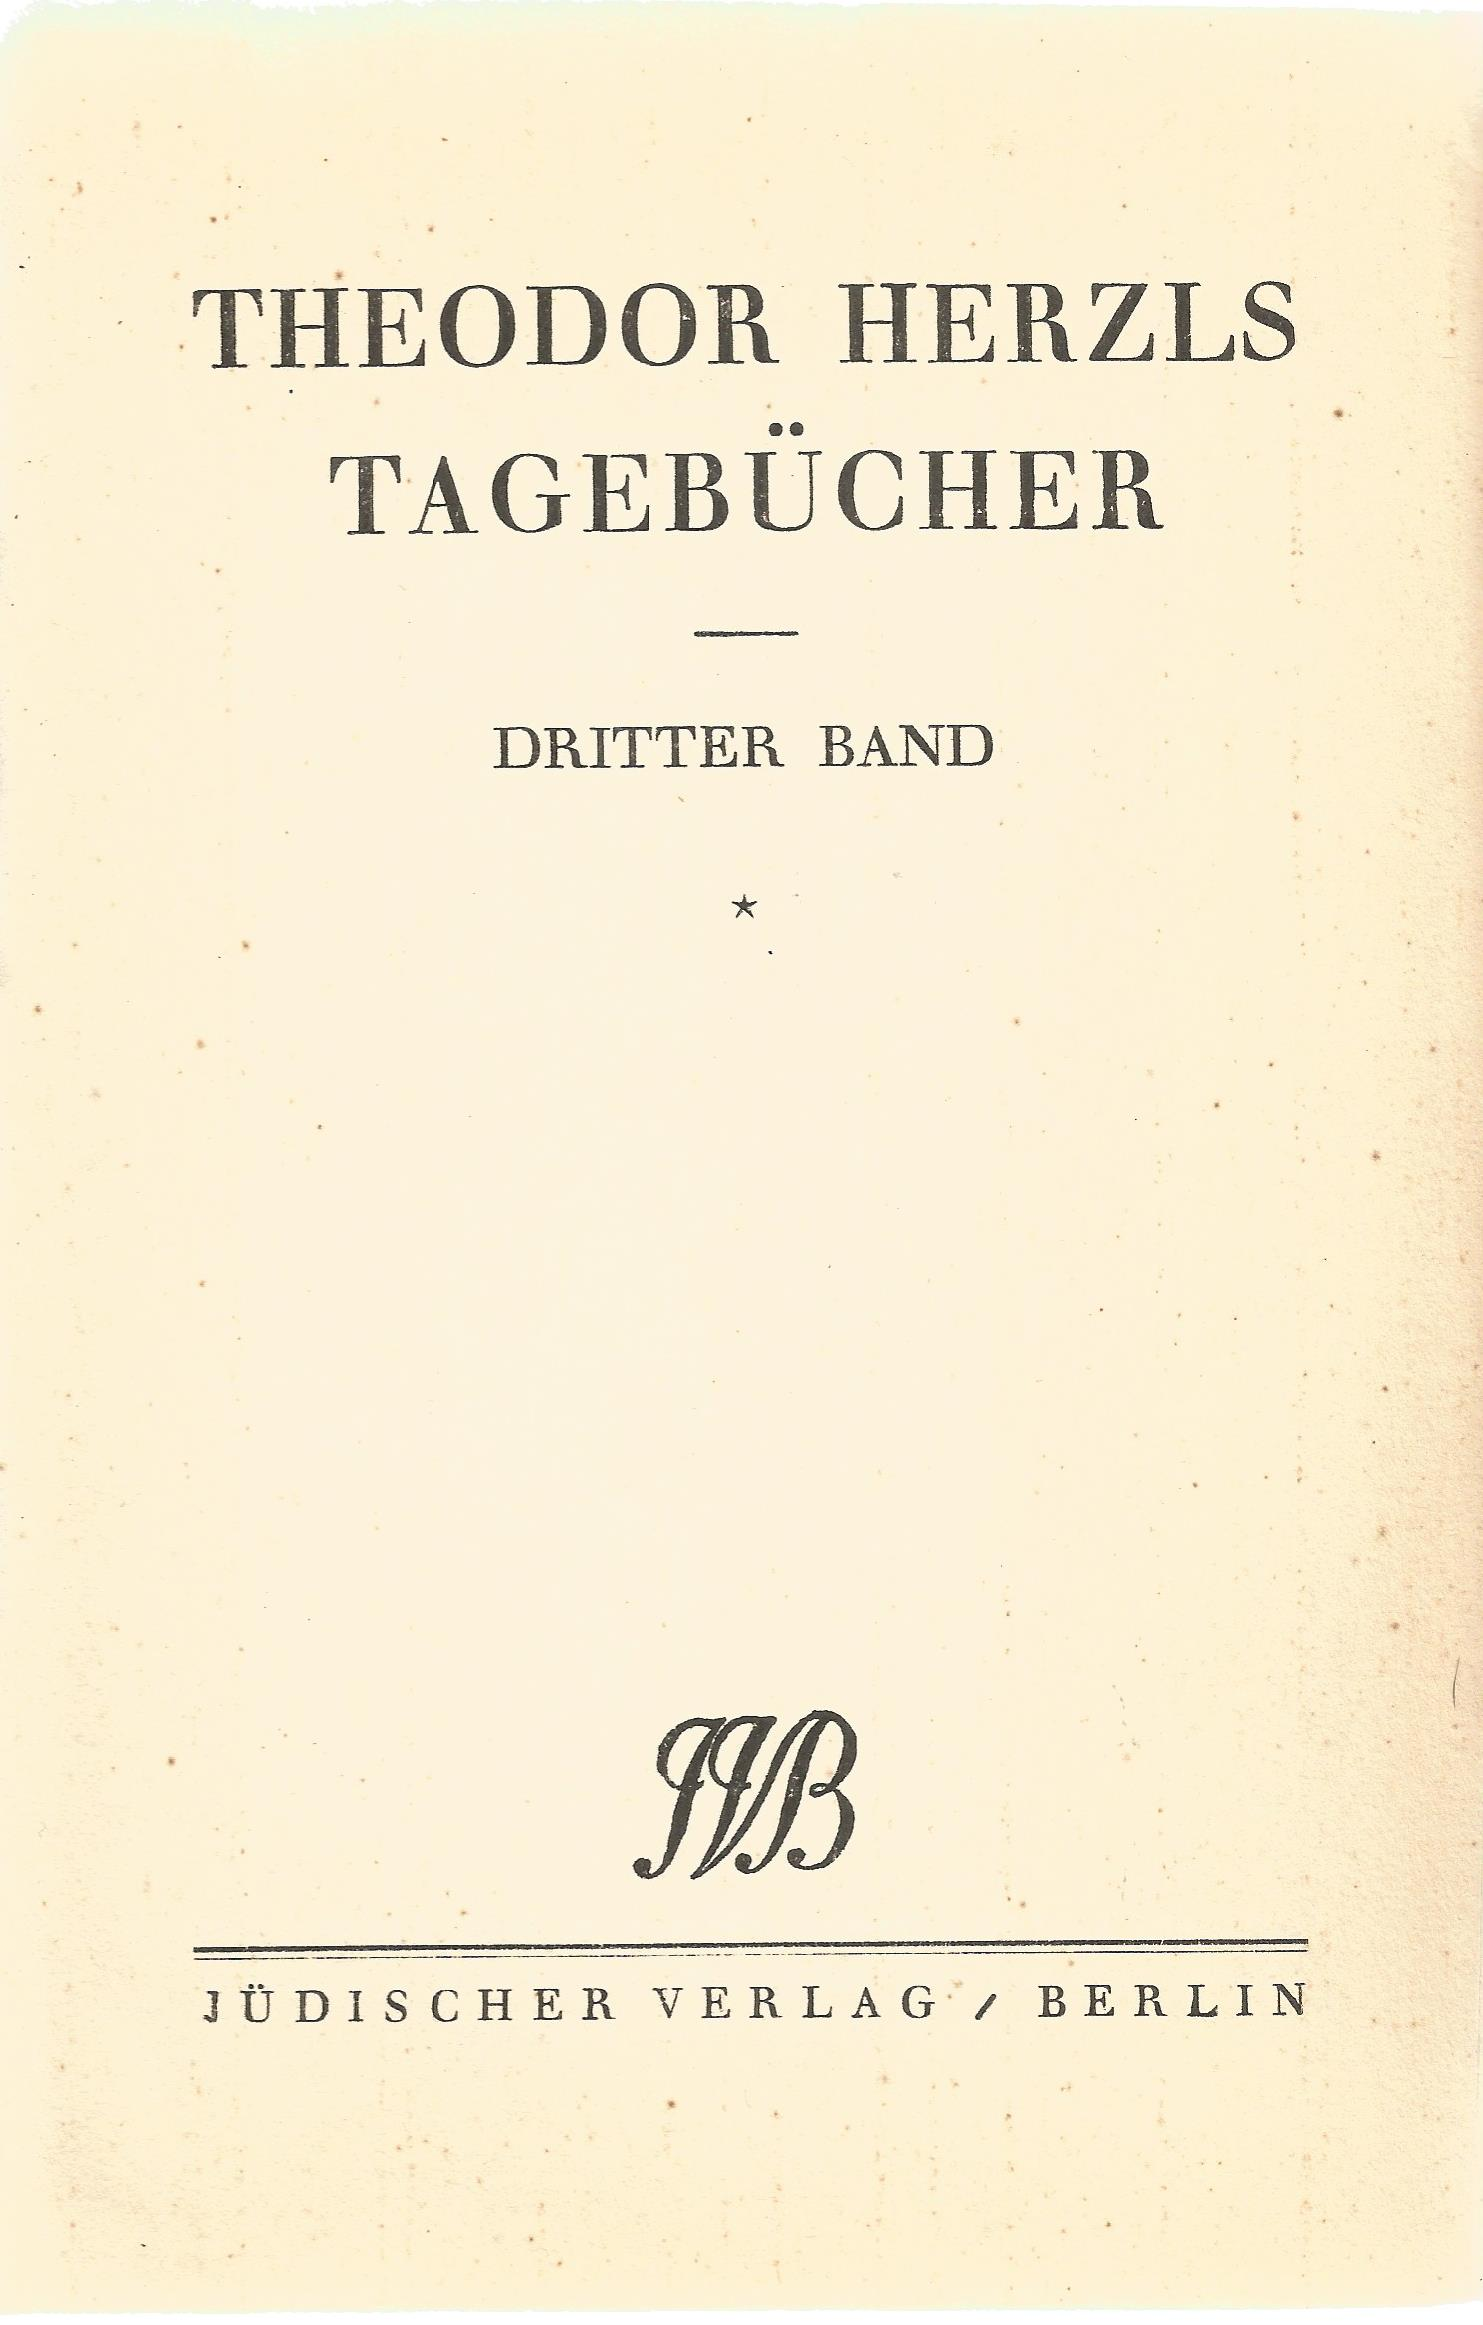 Collection of Volumes 1,2,3 Theodor Herzls, Tagebucher. Hardback book collection, Printed in 1922. - Image 4 of 4